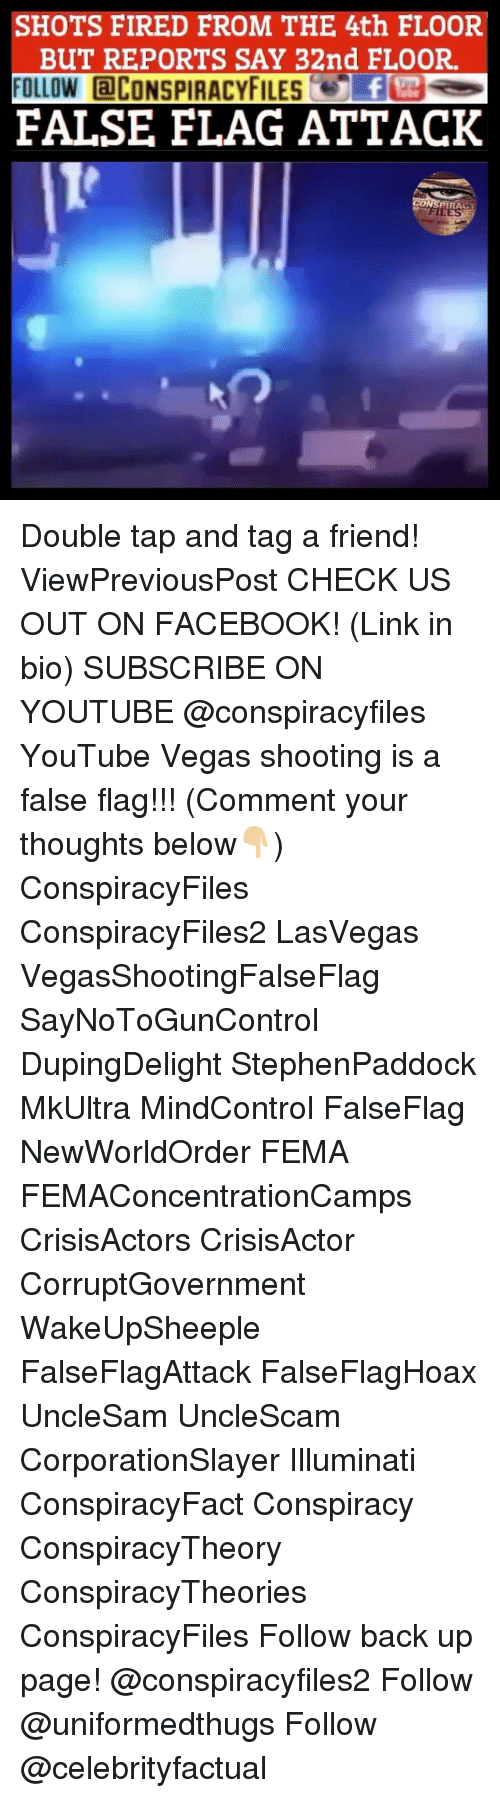 fema: SHOTS FIRED FROM THE 4th FLOOR  BUT REPORTS SAY 32nd FLOOR  FOLLOW CONSPIRACYFILEf  FALSE FLAG ATTACK  PIRACY Double tap and tag a friend! ViewPreviousPost CHECK US OUT ON FACEBOOK! (Link in bio) SUBSCRIBE ON YOUTUBE @conspiracyfiles YouTube Vegas shooting is a false flag!!! (Comment your thoughts below👇🏼) ConspiracyFiles ConspiracyFiles2 LasVegas VegasShootingFalseFlag SayNoToGunControl DupingDelight StephenPaddock MkUltra MindControl FalseFlag NewWorldOrder FEMA FEMAConcentrationCamps CrisisActors CrisisActor CorruptGovernment WakeUpSheeple FalseFlagAttack FalseFlagHoax UncleSam UncleScam CorporationSlayer Illuminati ConspiracyFact Conspiracy ConspiracyTheory ConspiracyTheories ConspiracyFiles Follow back up page! @conspiracyfiles2 Follow @uniformedthugs Follow @celebrityfactual